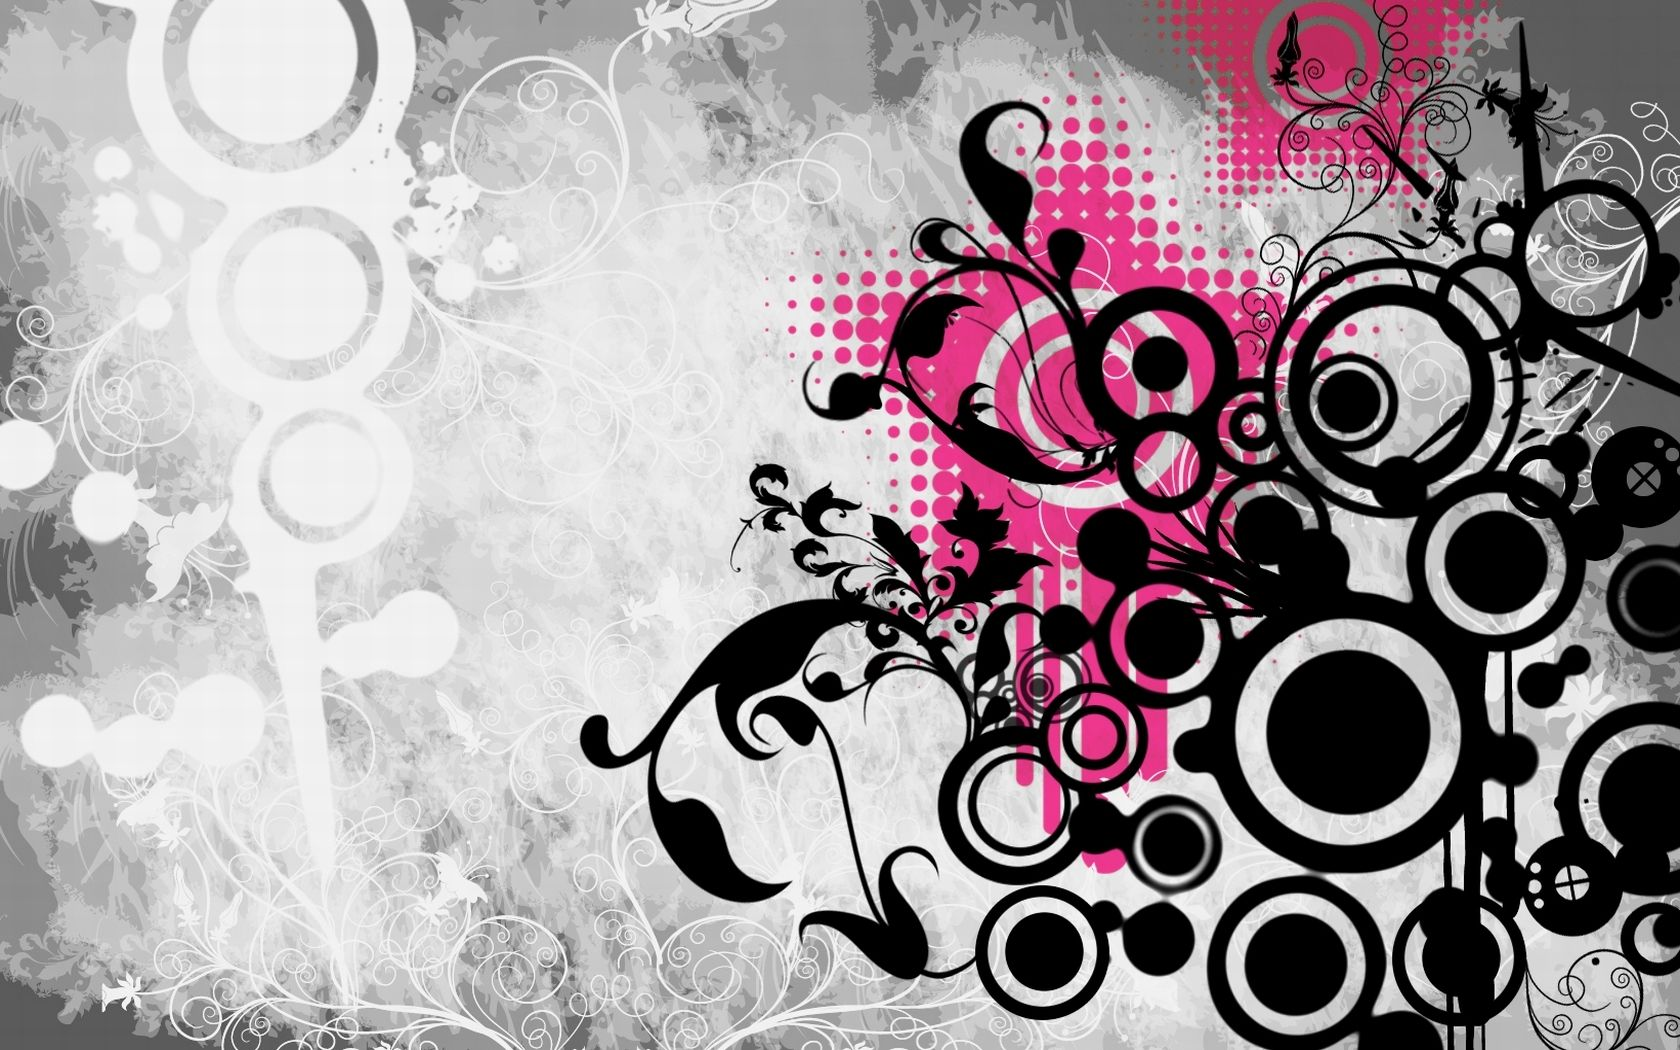 artistic abstract wallpaper images